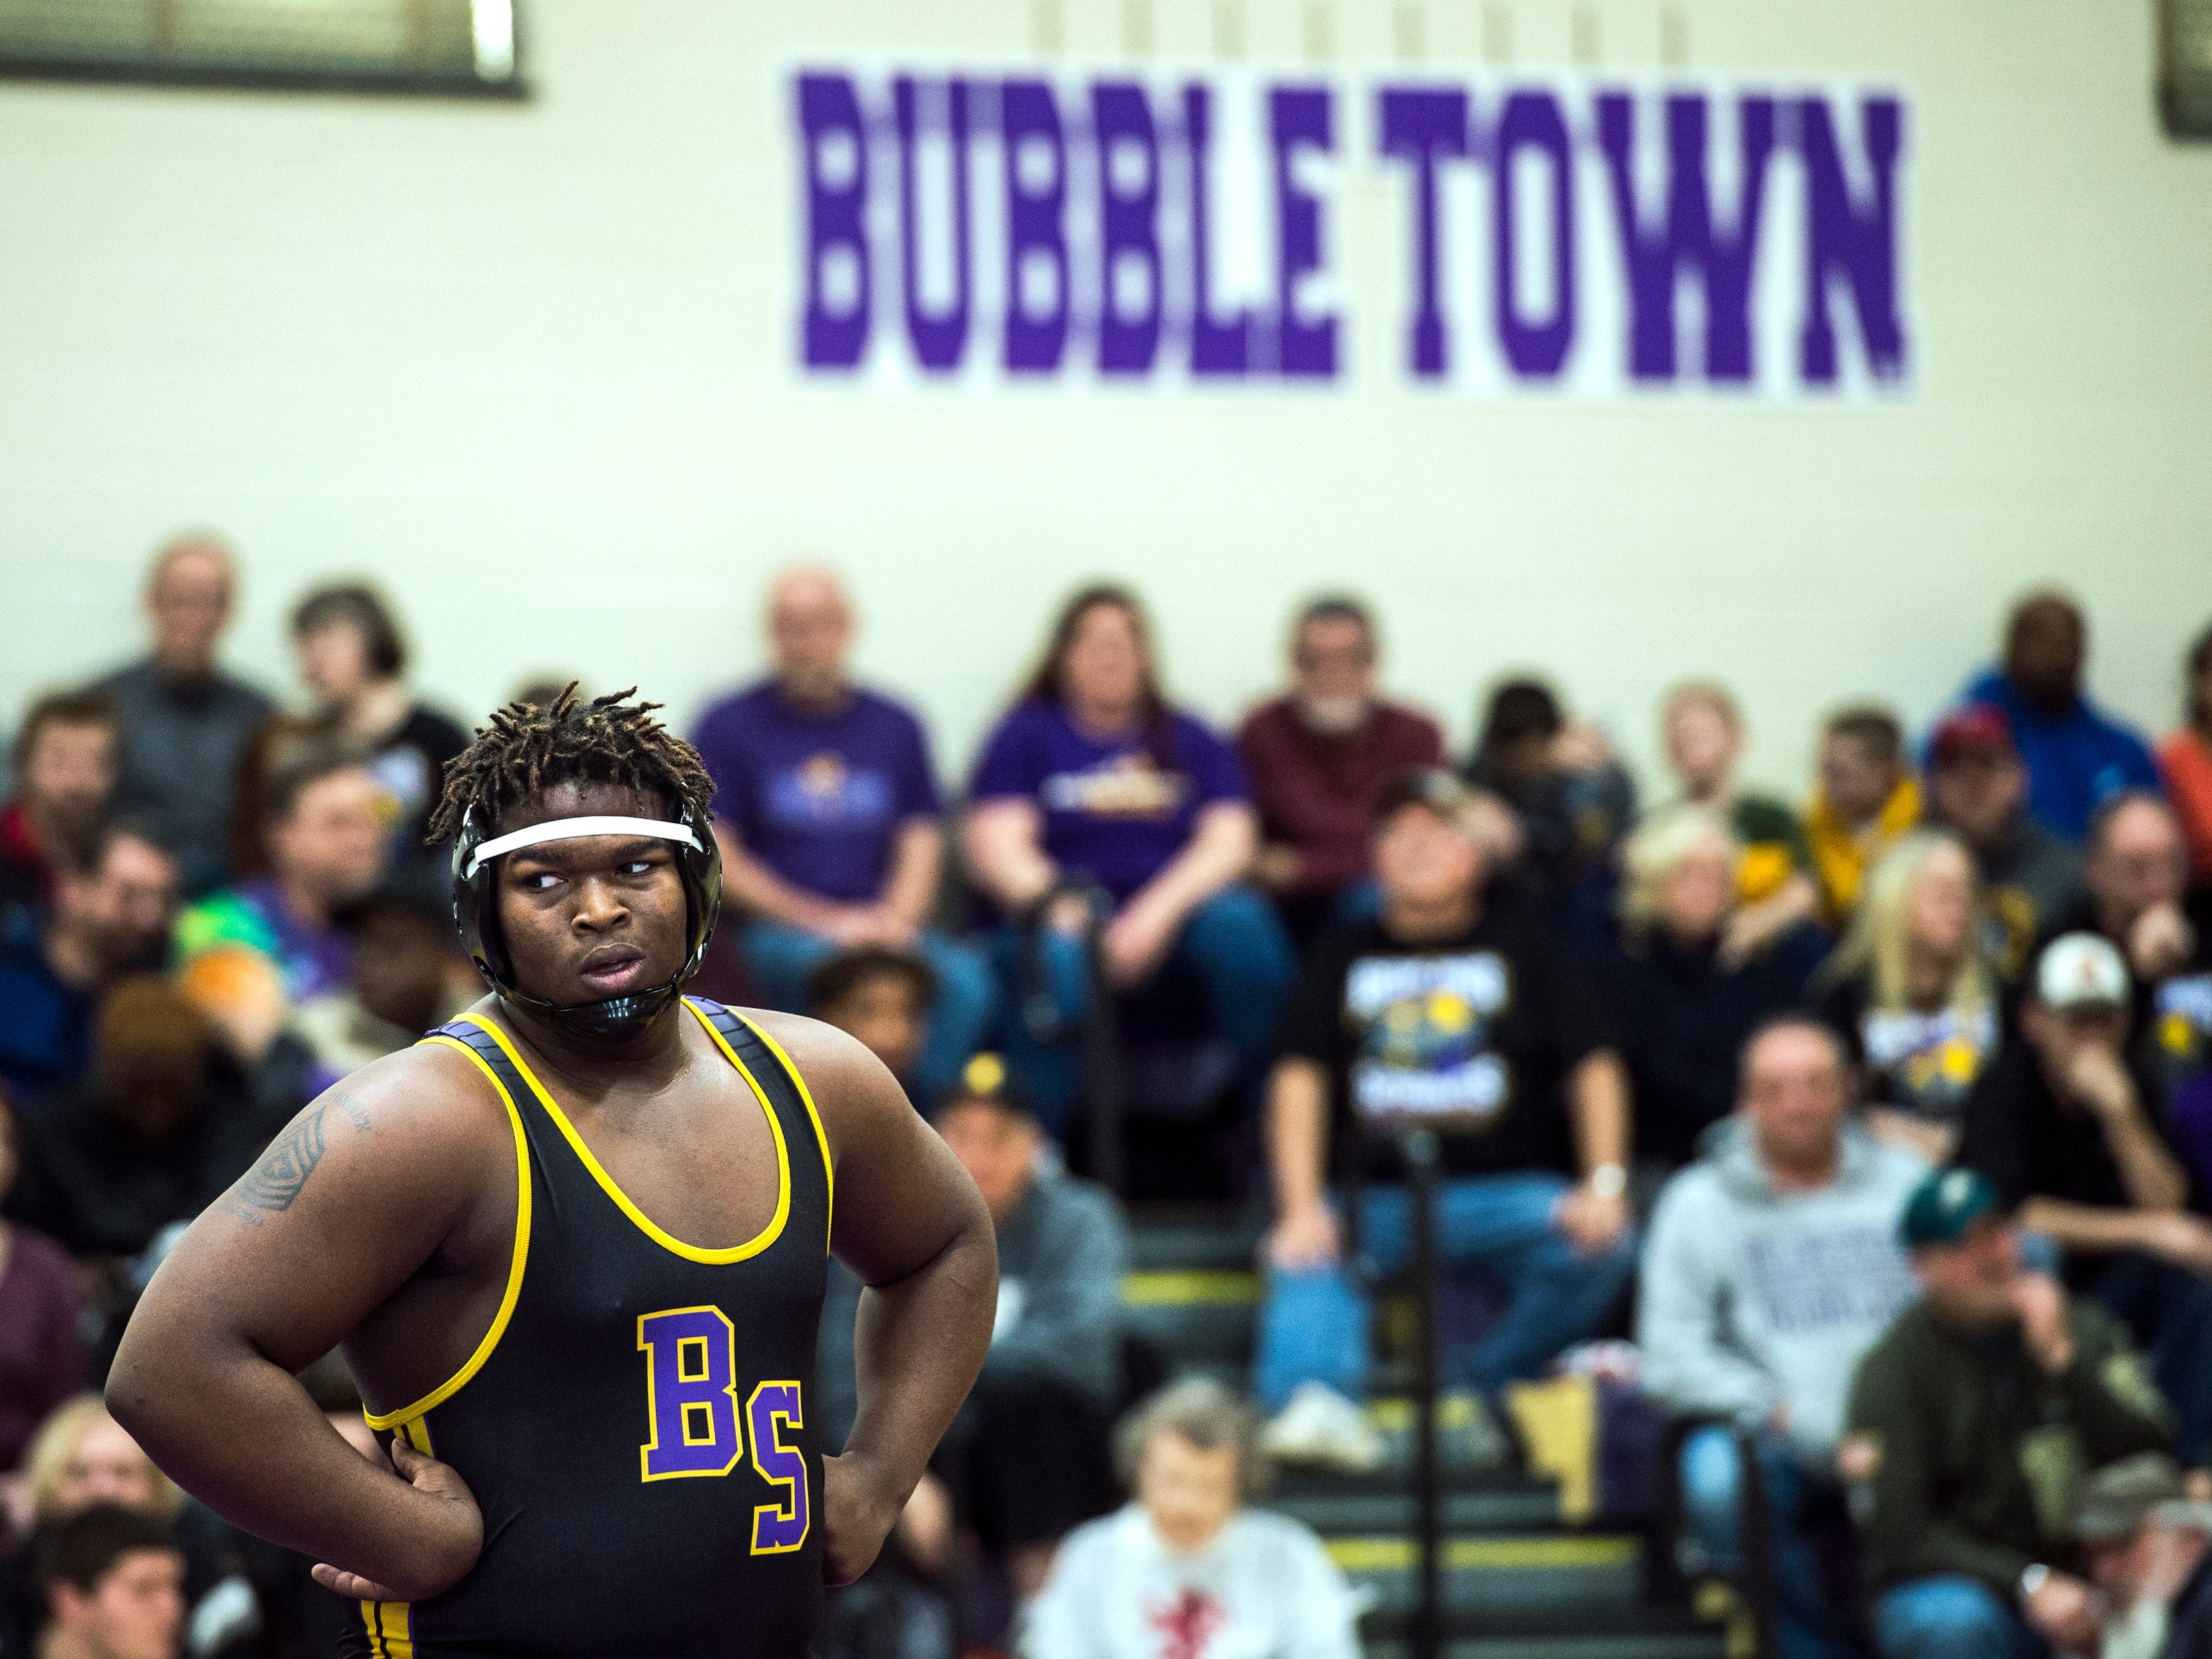 Boiling Springs' Damon James glances toward the Bermudian Springs' bench during the 285-pound bout. James won, 8-1, Saturday, Jan. 27, 2018. The Boiling Springs Bubblers beat the Bermudian Springs Eagles, 41-19 in the District 3 match.